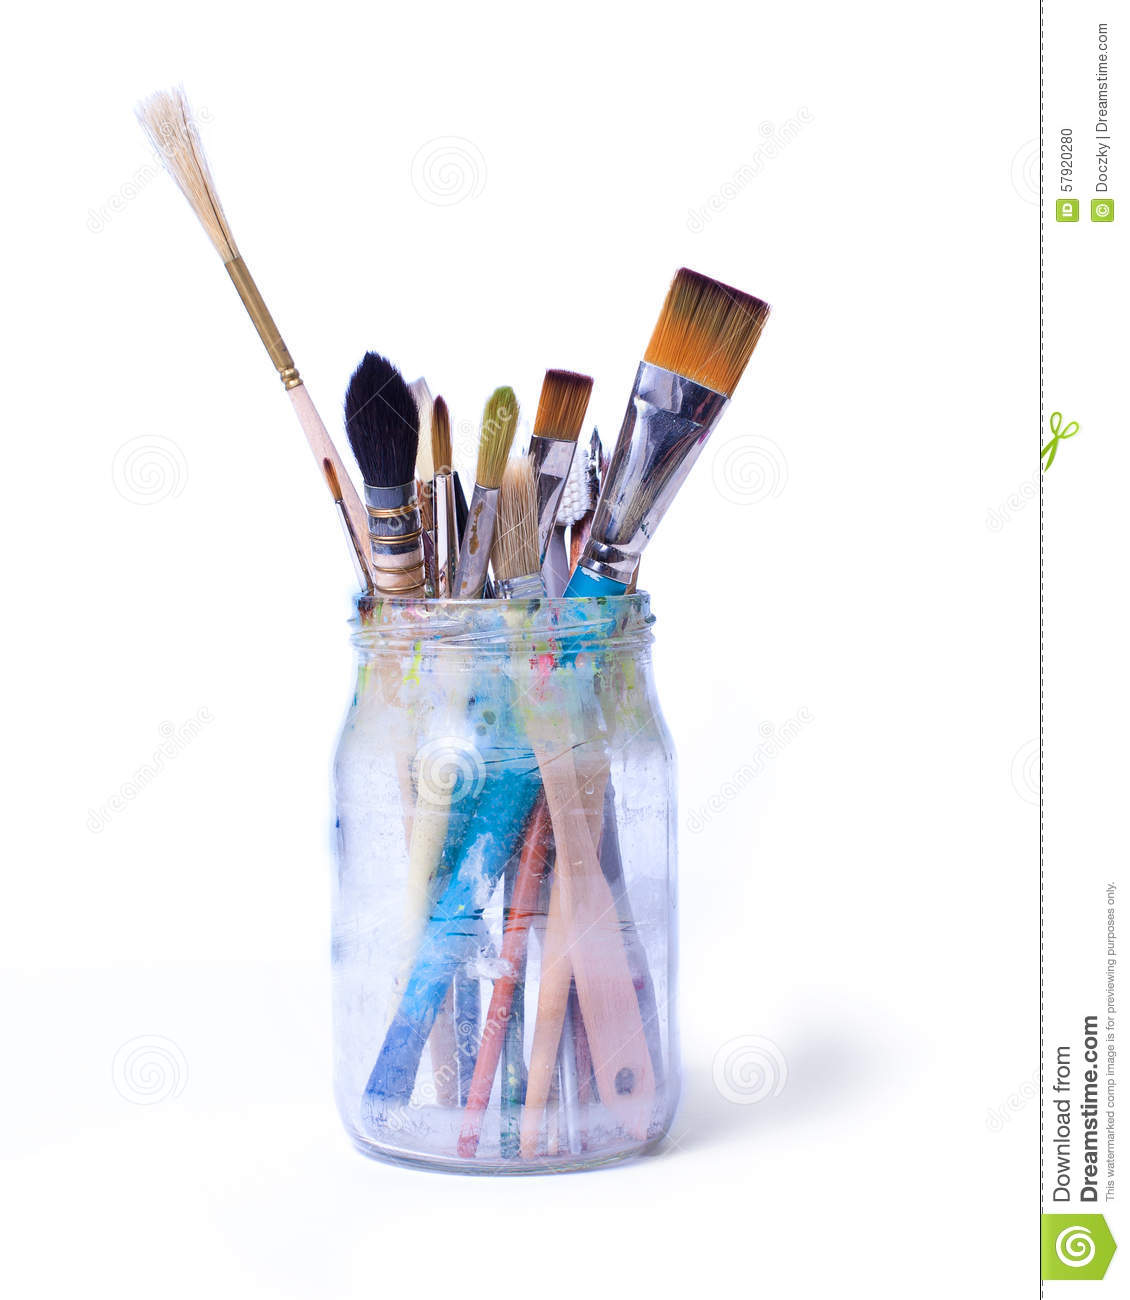 Acrylic Craft Paint For Glass